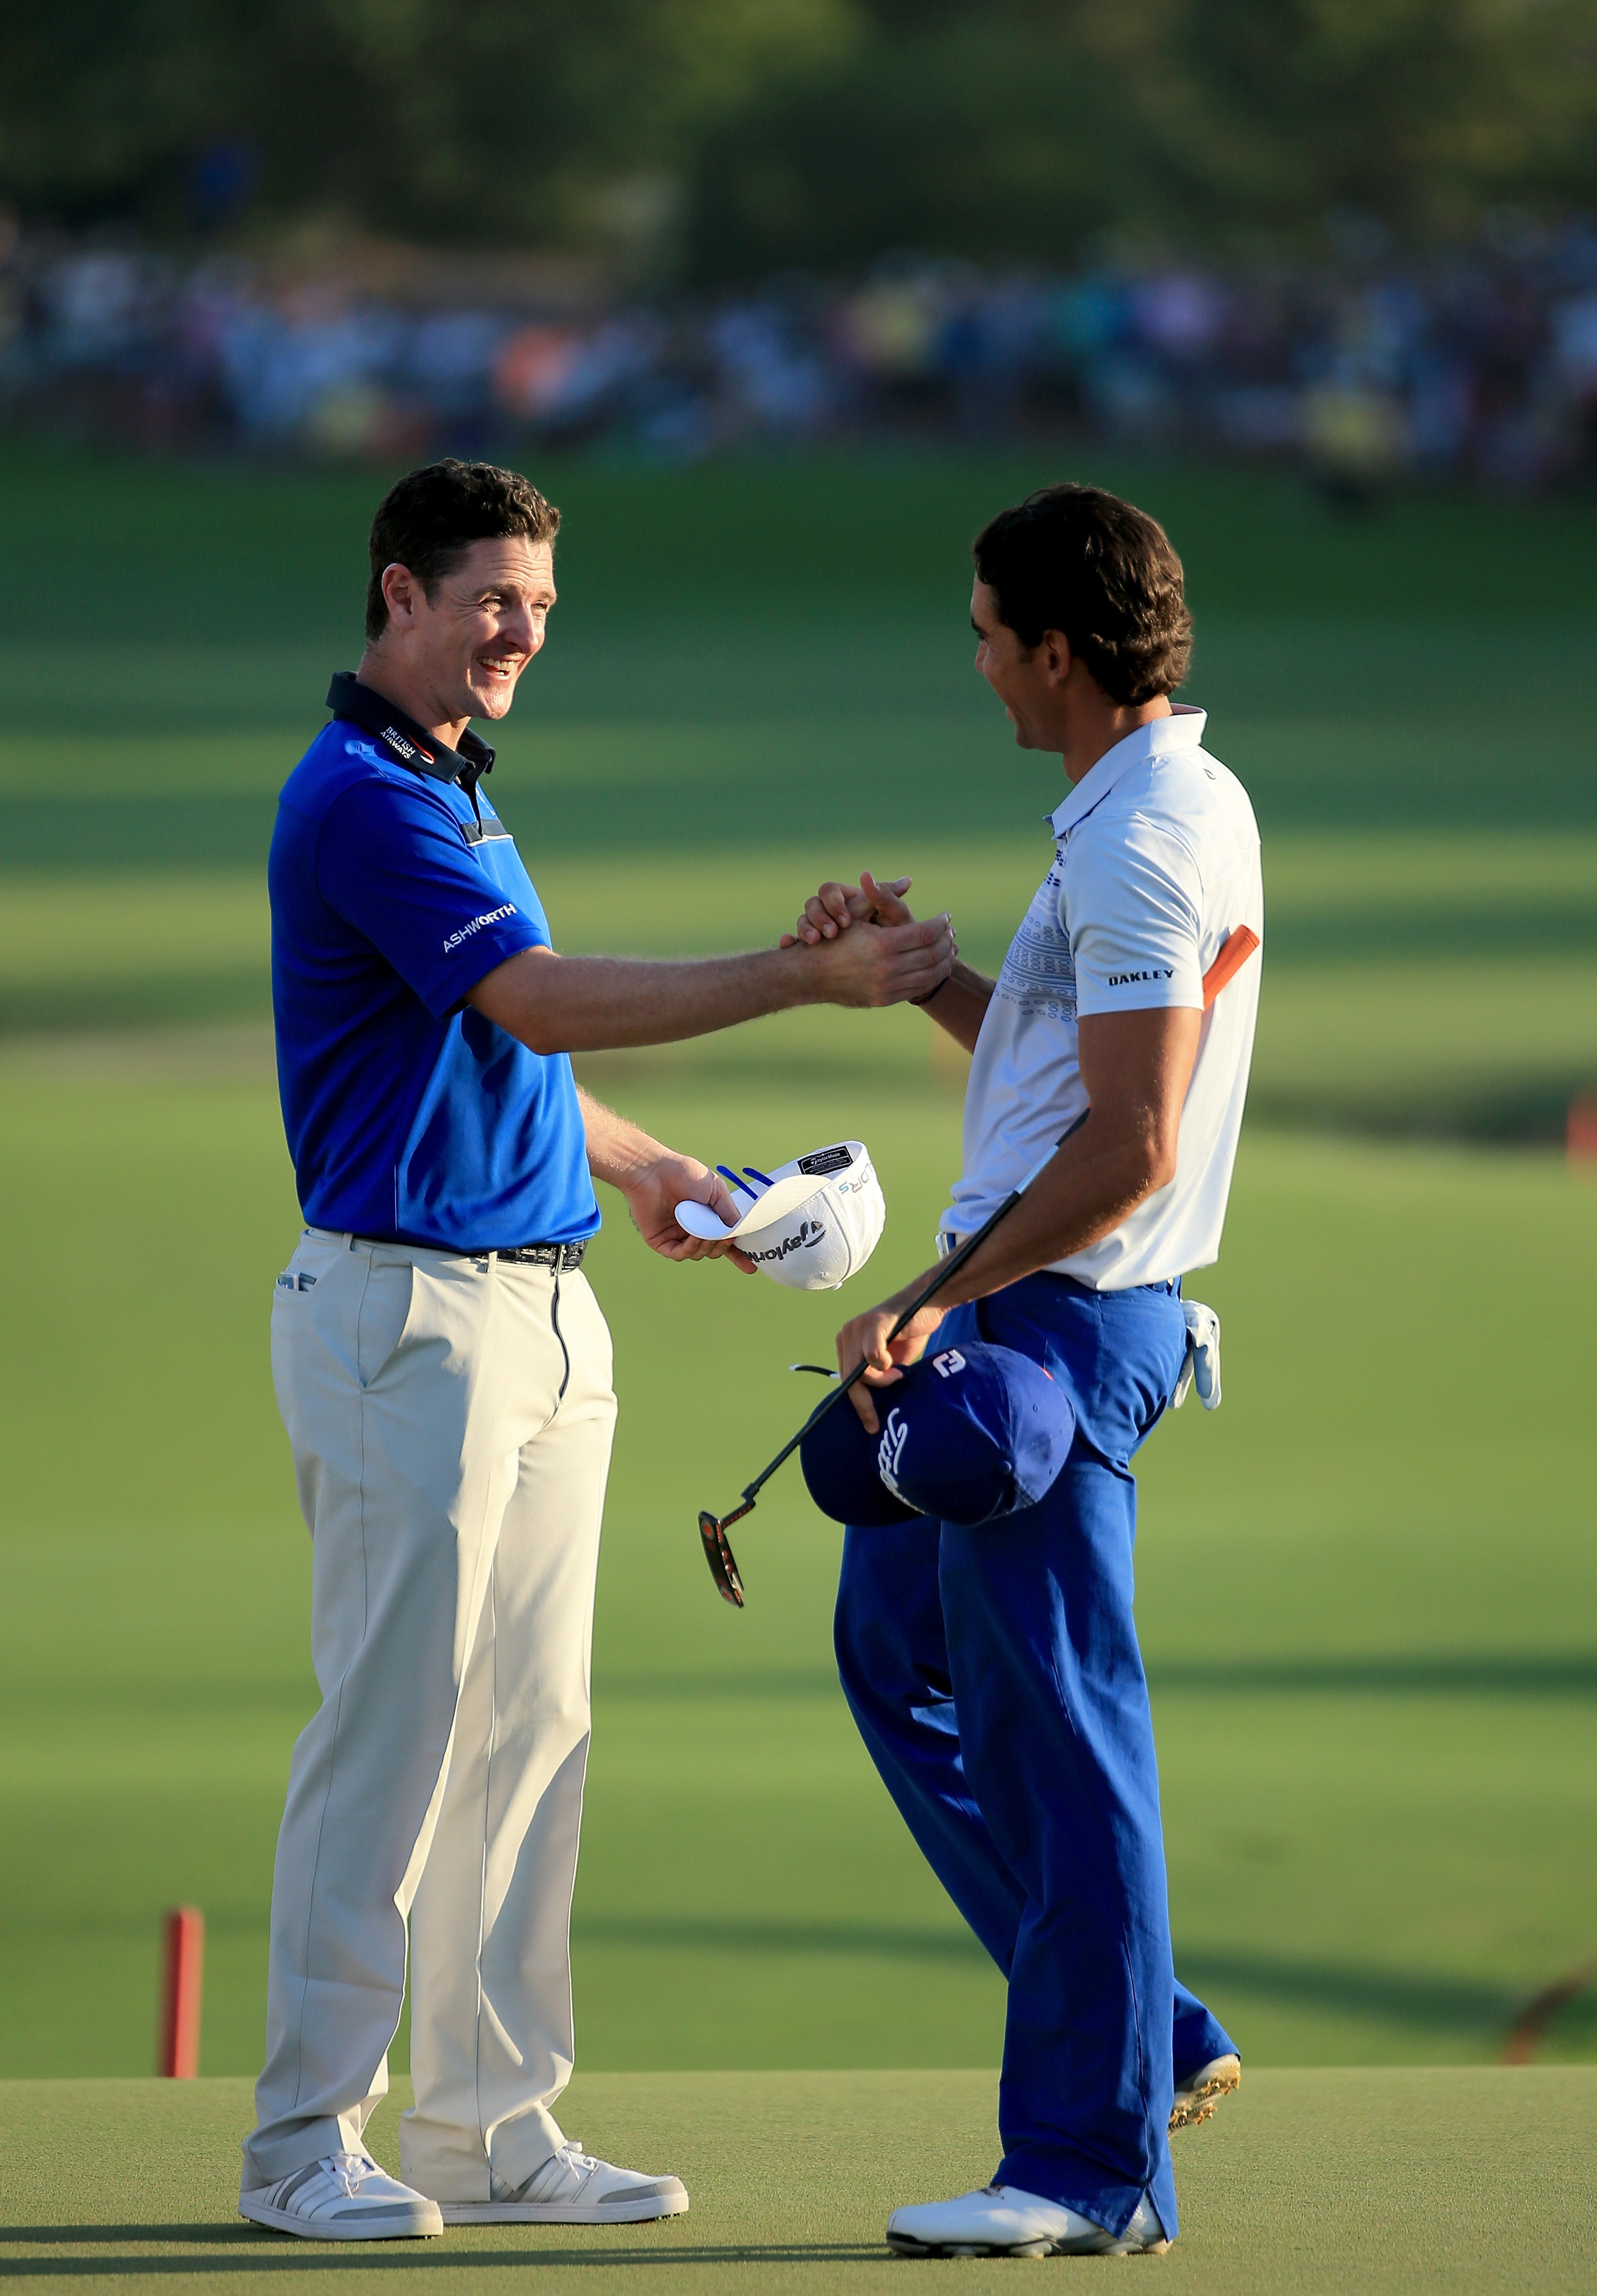 Rafa Cabrera-Bello of Spain (R) and Justin Rose of England shake hands after they had both made birdie at the par 5, 18th hole. Justin Rose sits third, shooting a third-round 68.